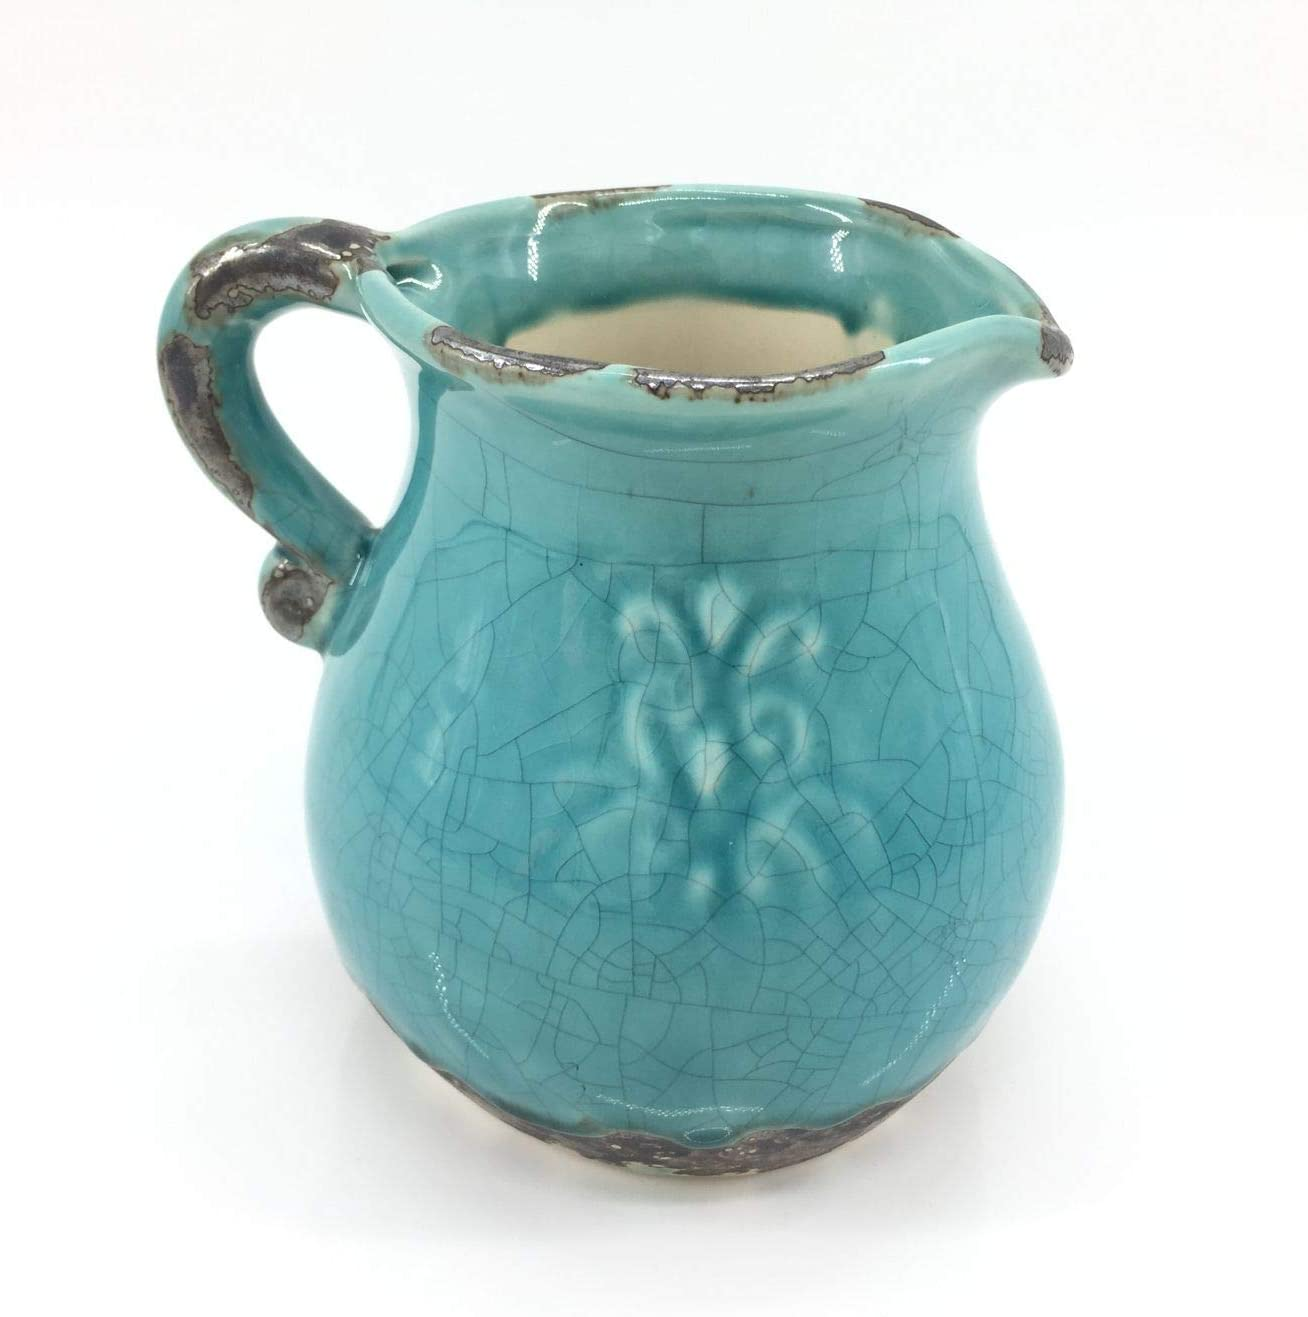 Anding Blue Modern Vase-Pitcher Vase Antique Ceramic Year-end All items in the store gift Plan Design